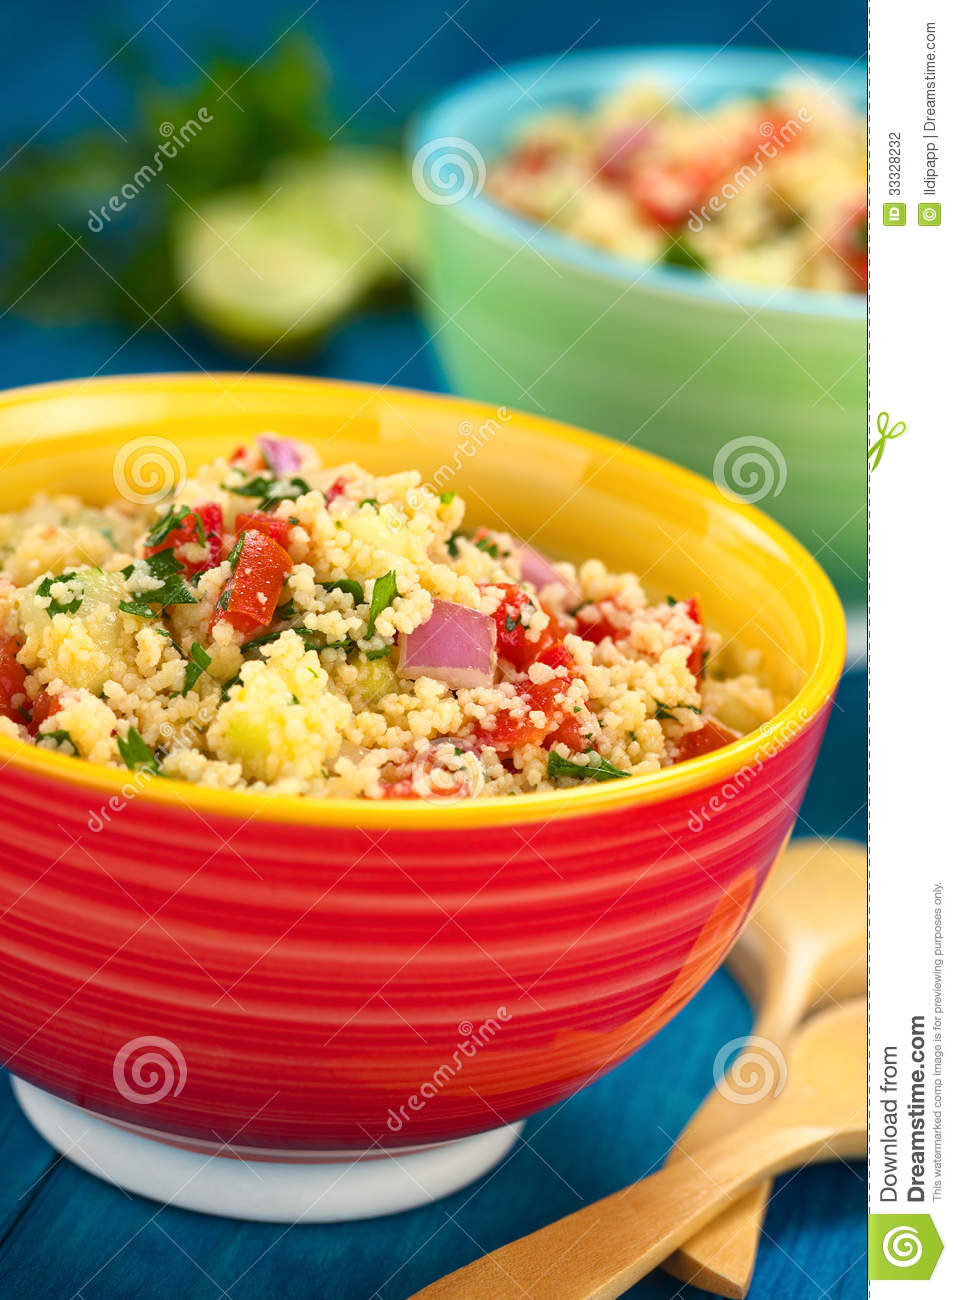 Tabbouleh Stock Photography - Image: 33328232